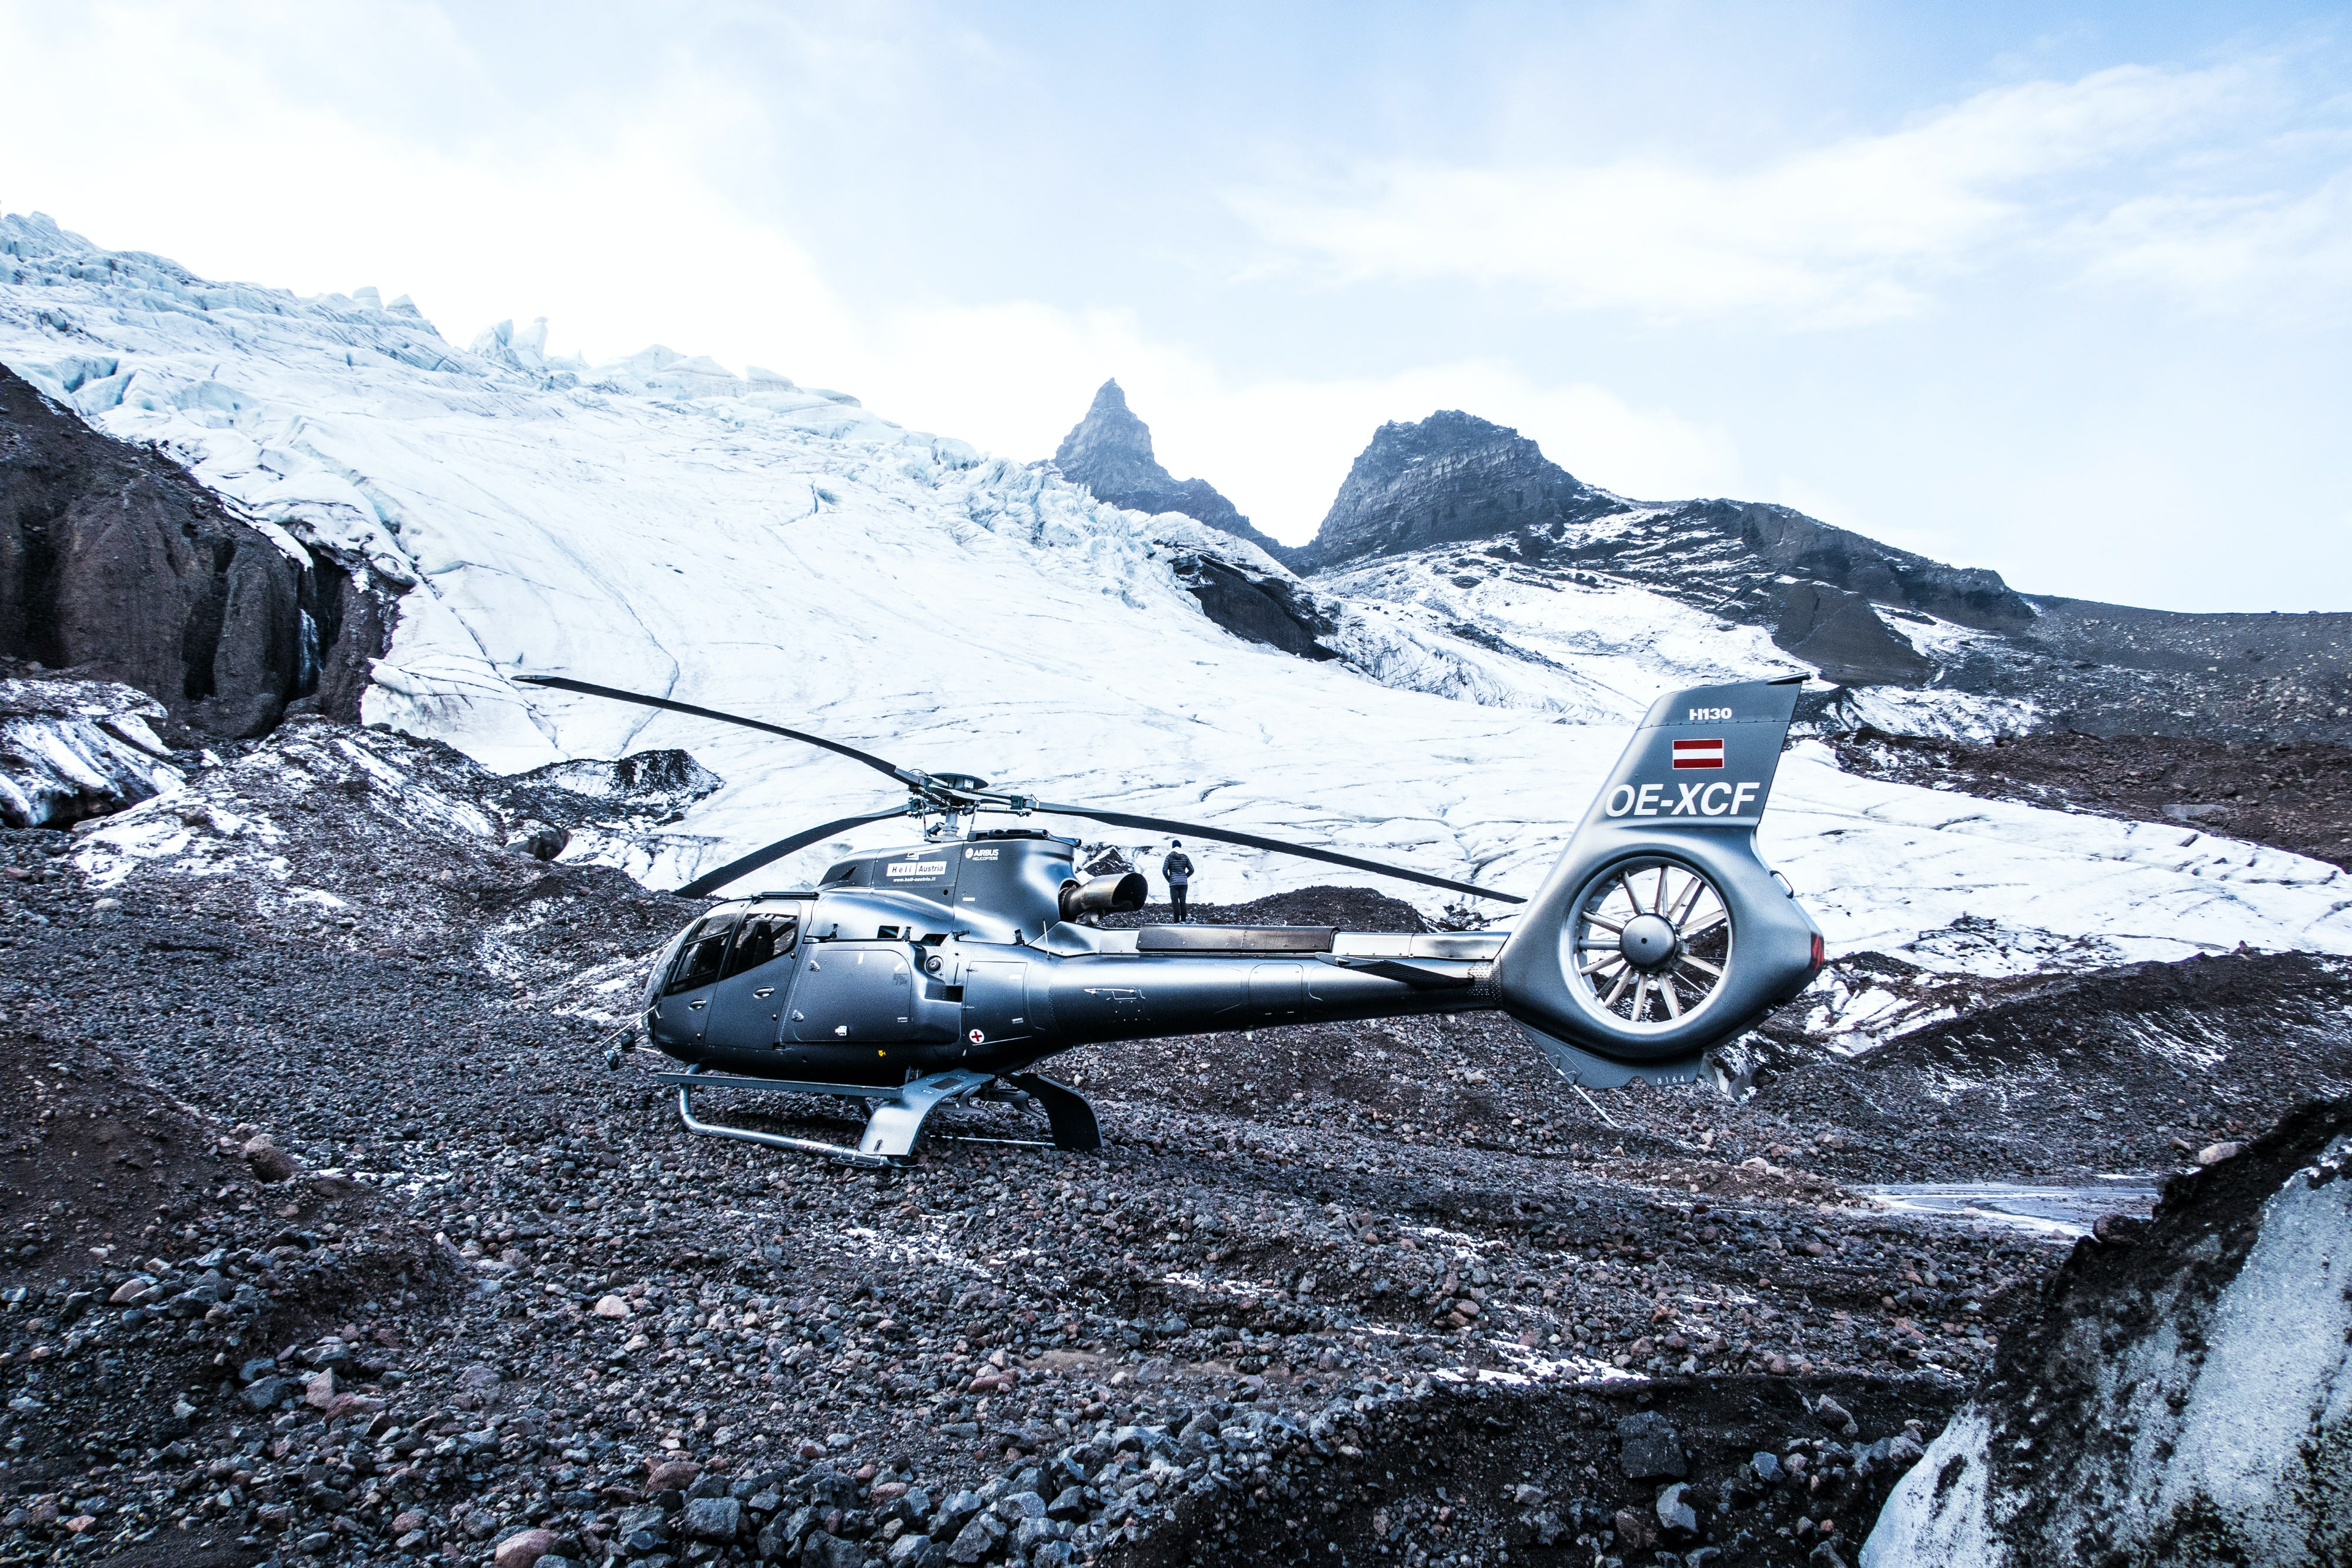 A helicopter on a glacier landing tour